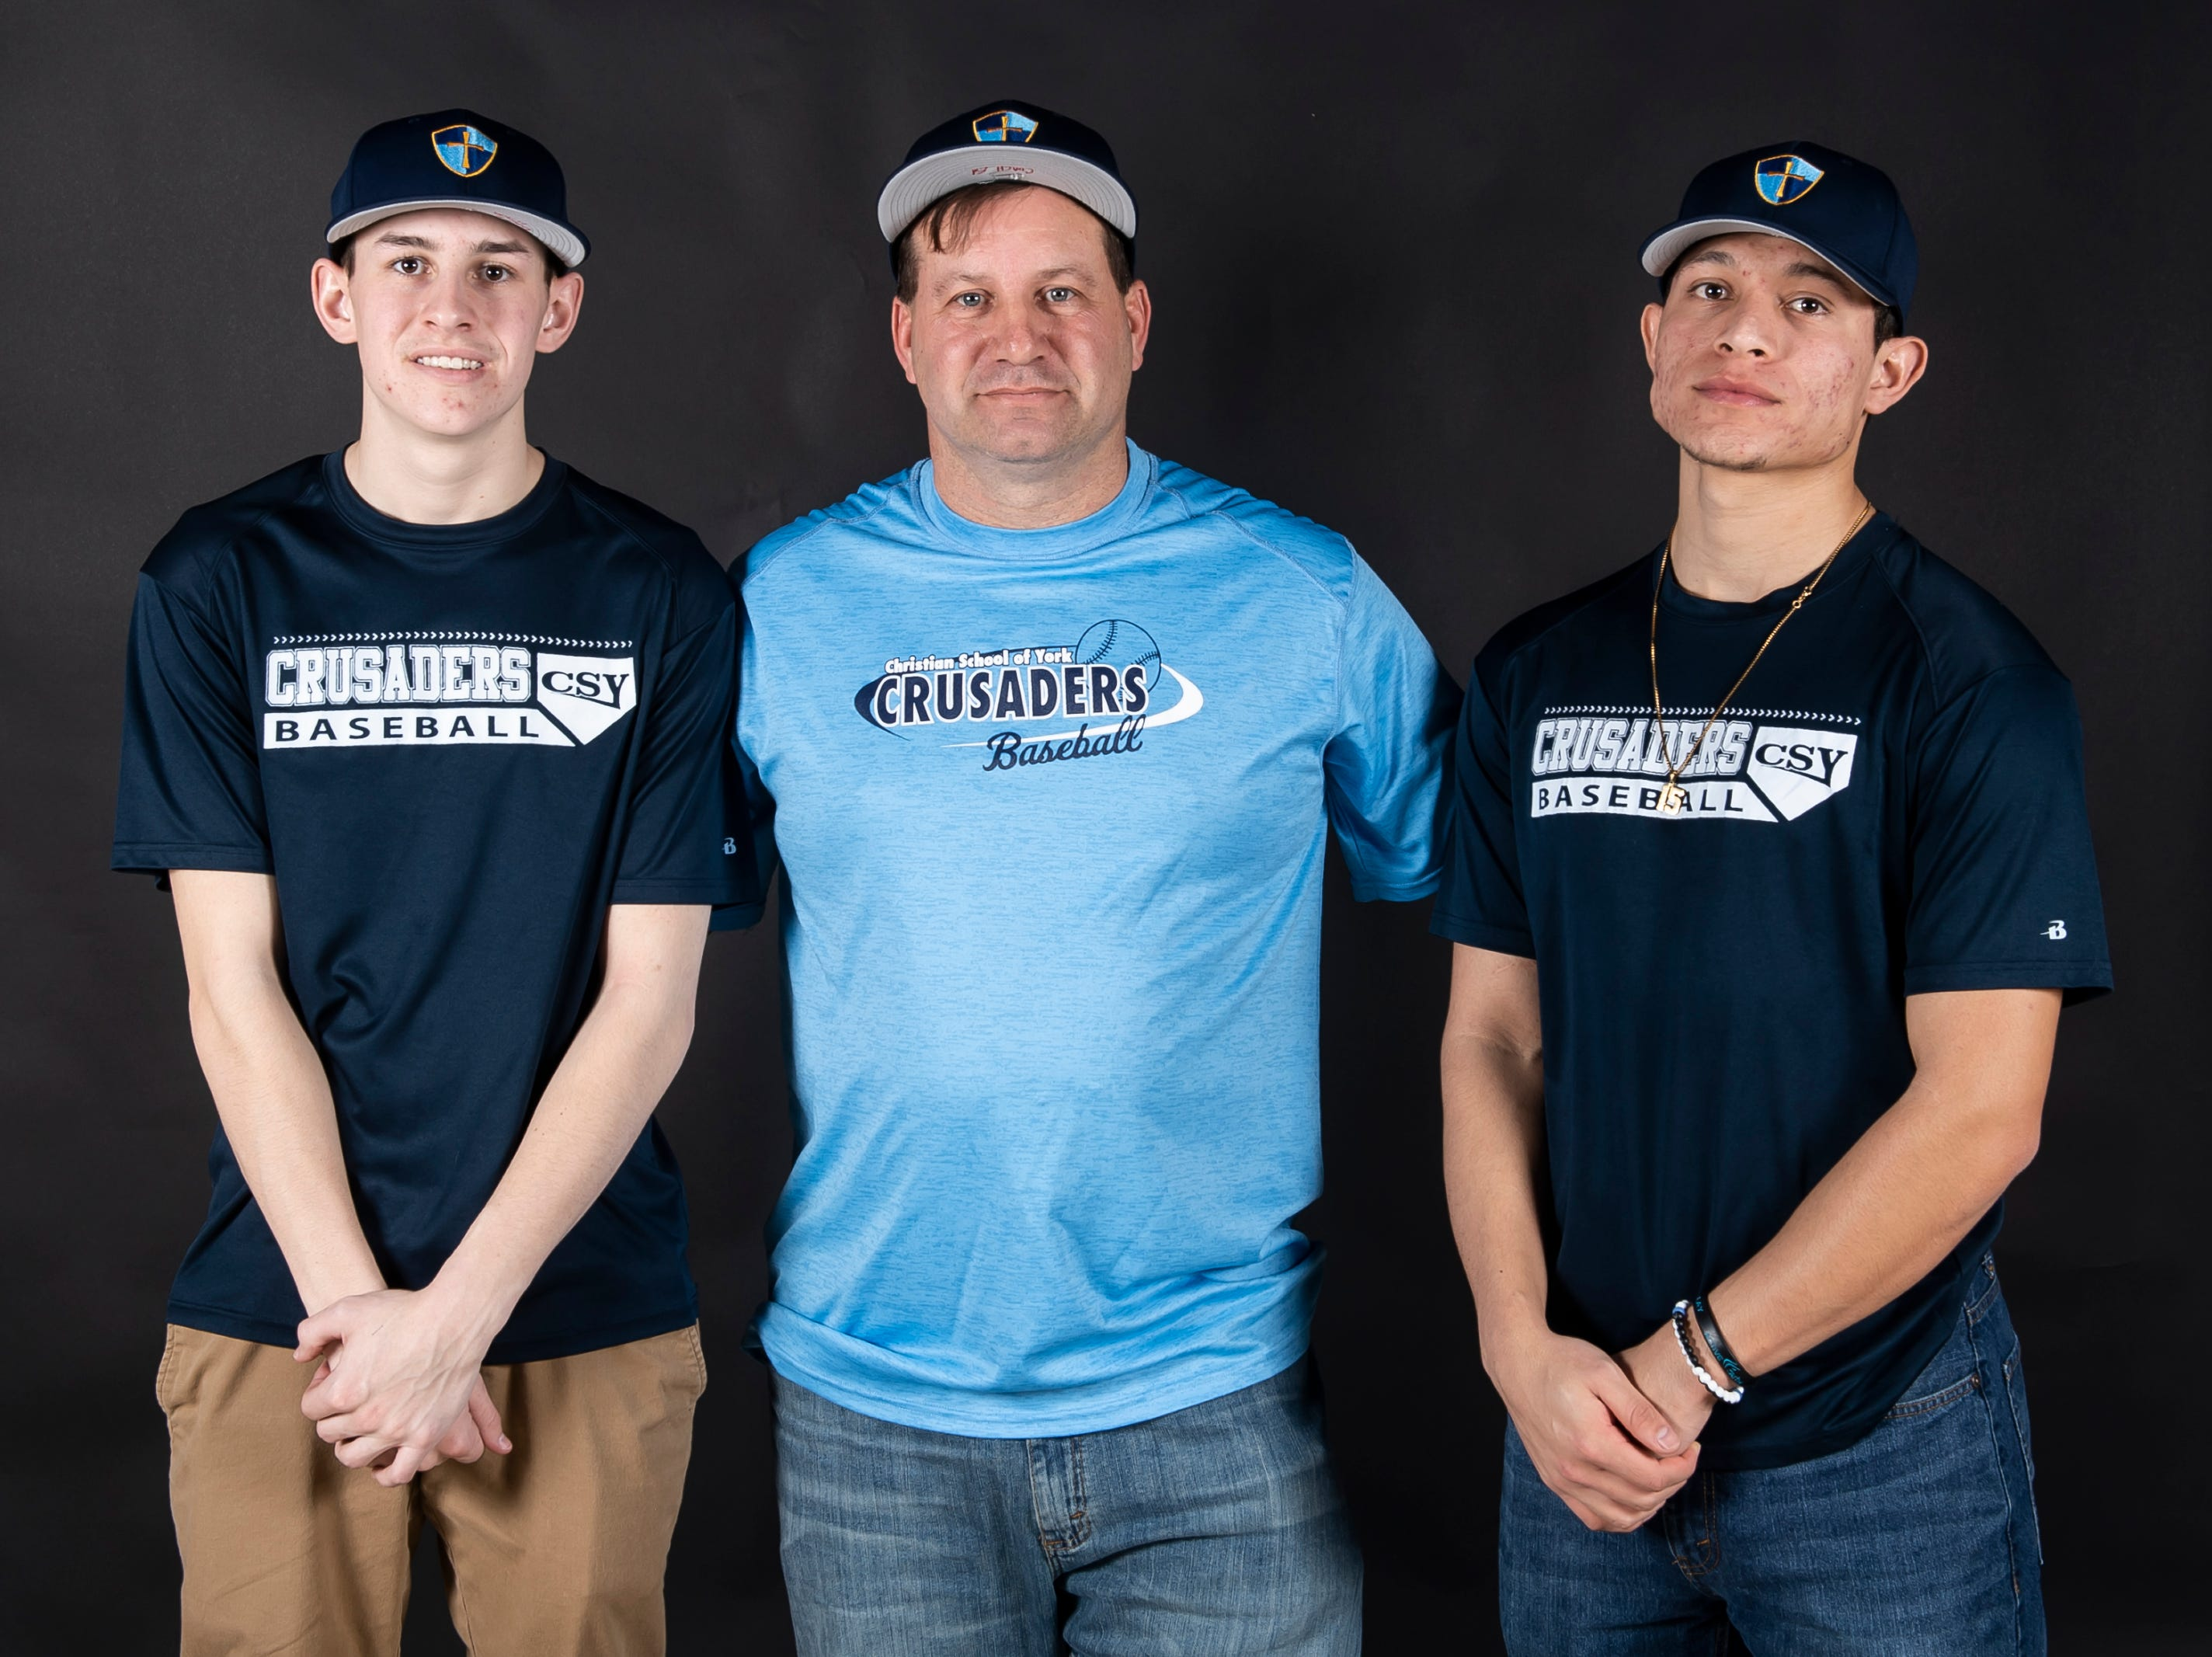 (From left) Christian School of York baseball's Lane Ferrence, coach Ed Bills and Neco Velasco pose in the GameTimePA photo booth during spring sports media day in York Sunday, March 10, 2019.